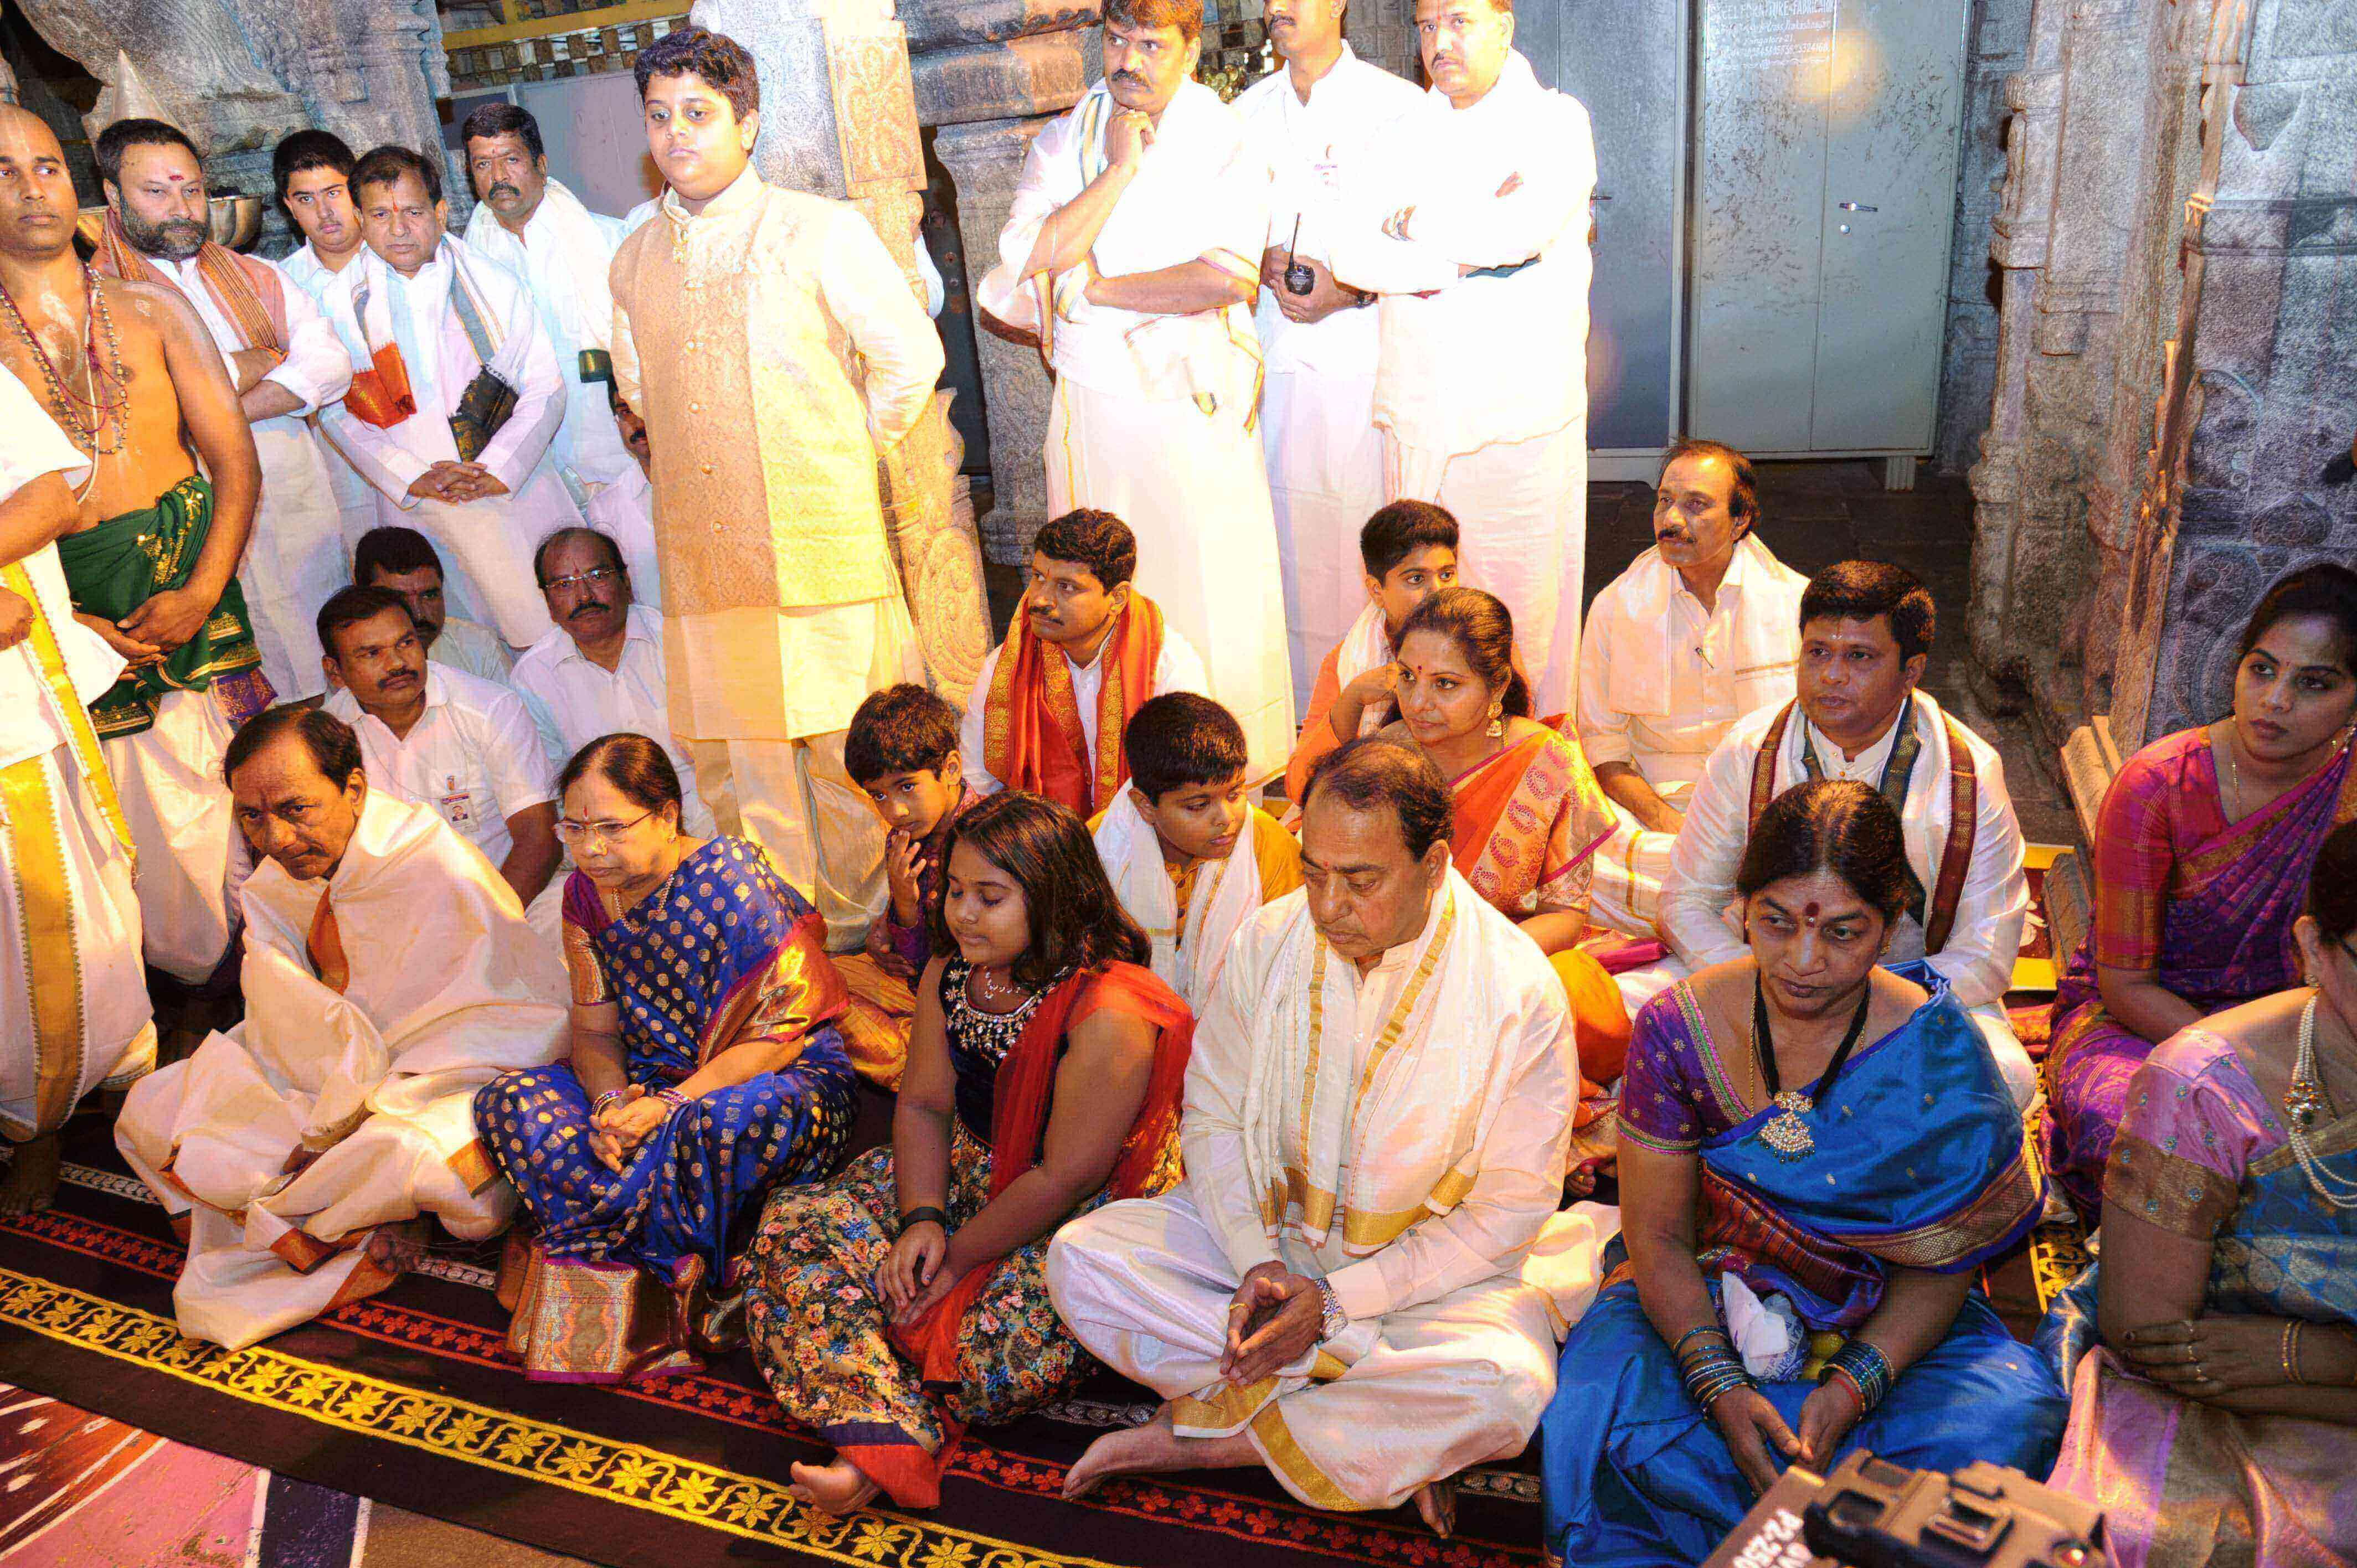 Telangana Chief Minister K Chandrashekhar Rao along with members of his family has donated offerings to Lord Venkateswara Swamy in Tirumala. 22.02.2017.